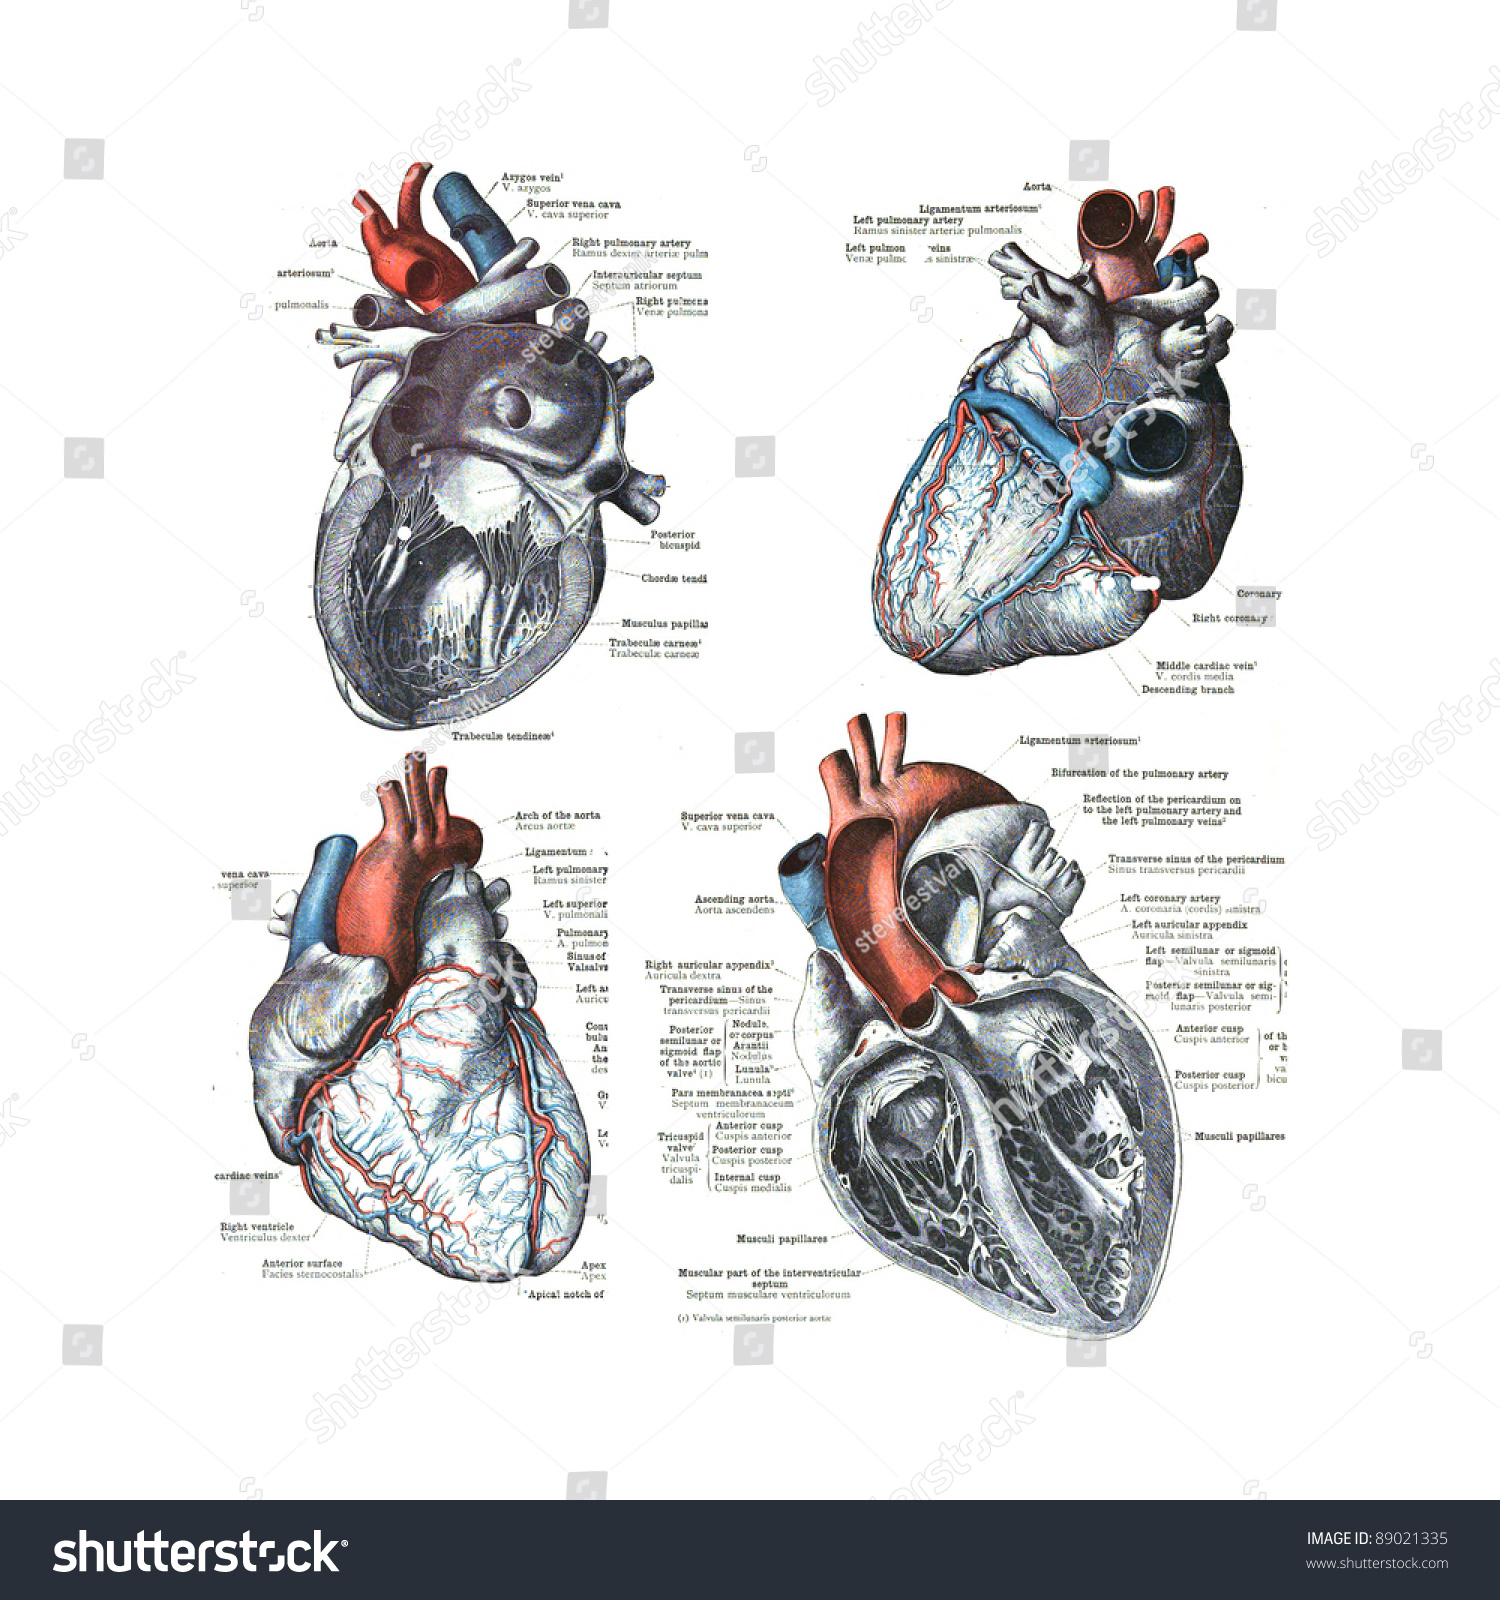 4 Views Human Heart Atlas Human Stock Photo Safe To Use 89021335